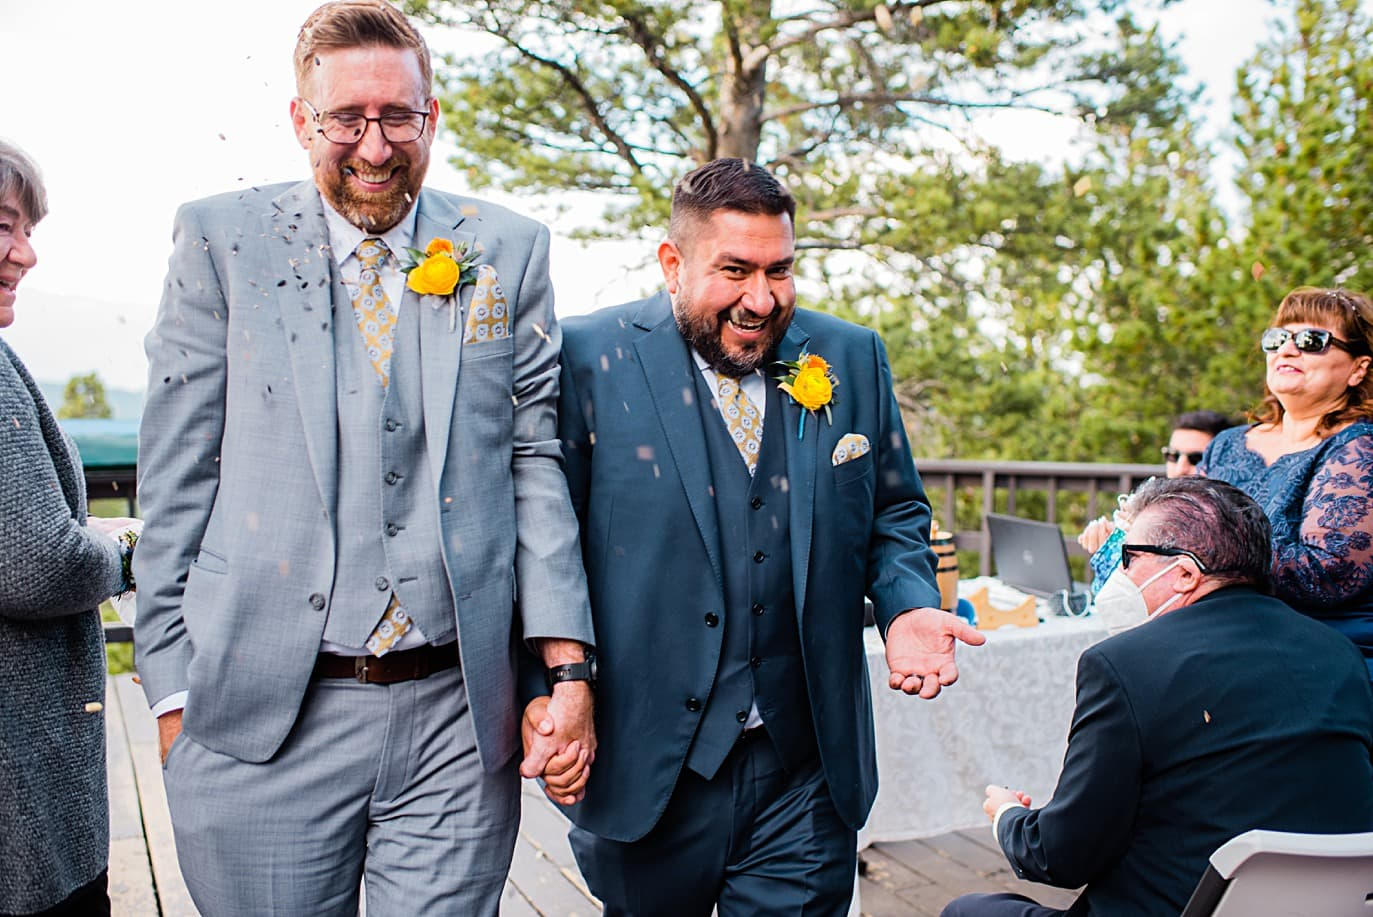 grooms walk down aisle to shower of birdseed at Panorama point during LGBTQ wedding by Colorado LGBT photographer Jennie Crate